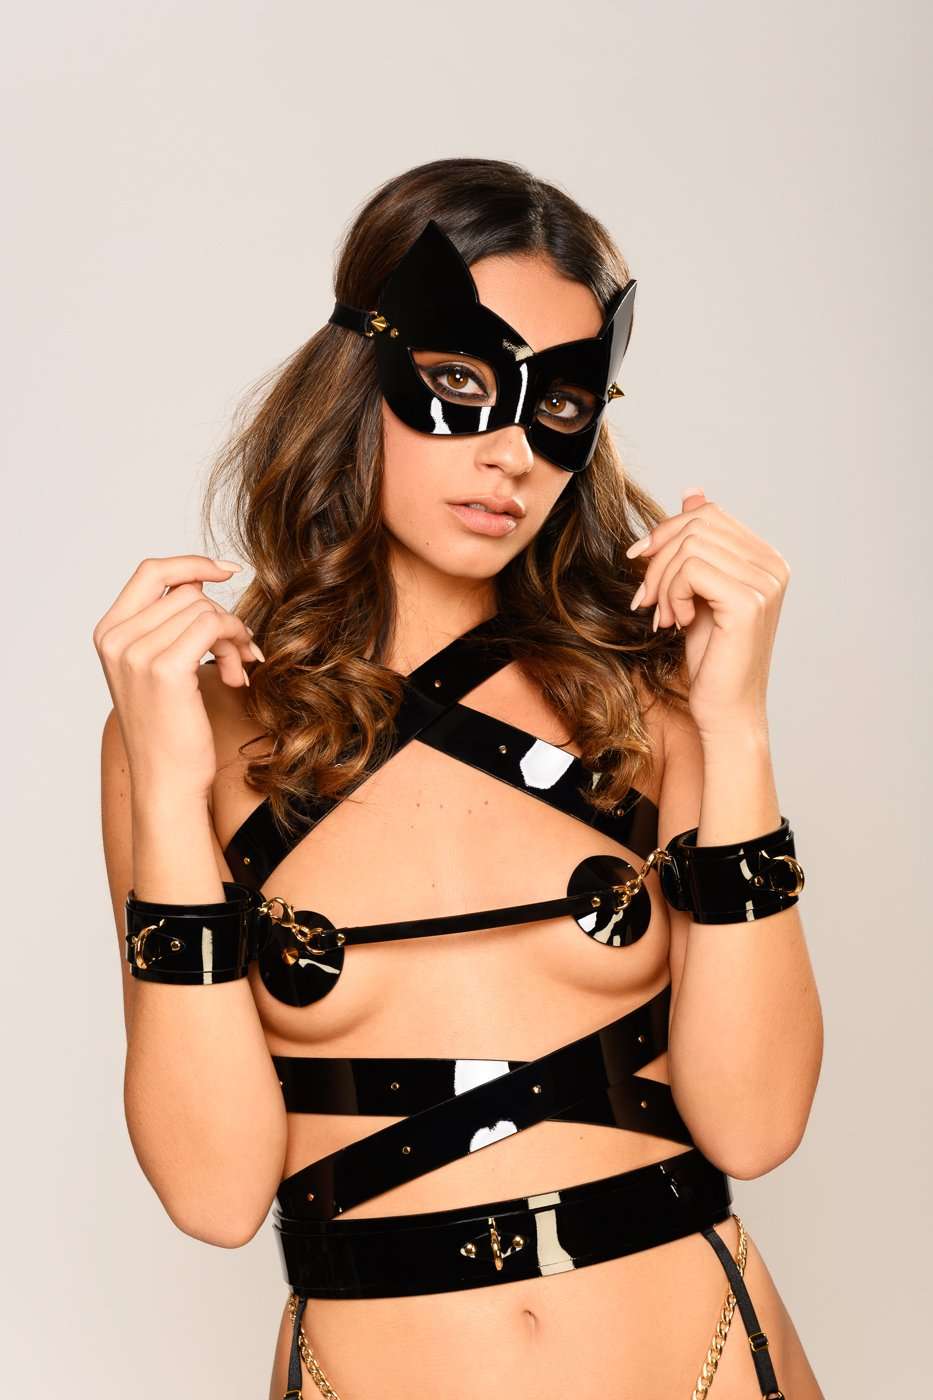 Rica Handcuffs in black leather by Fraulein Kink